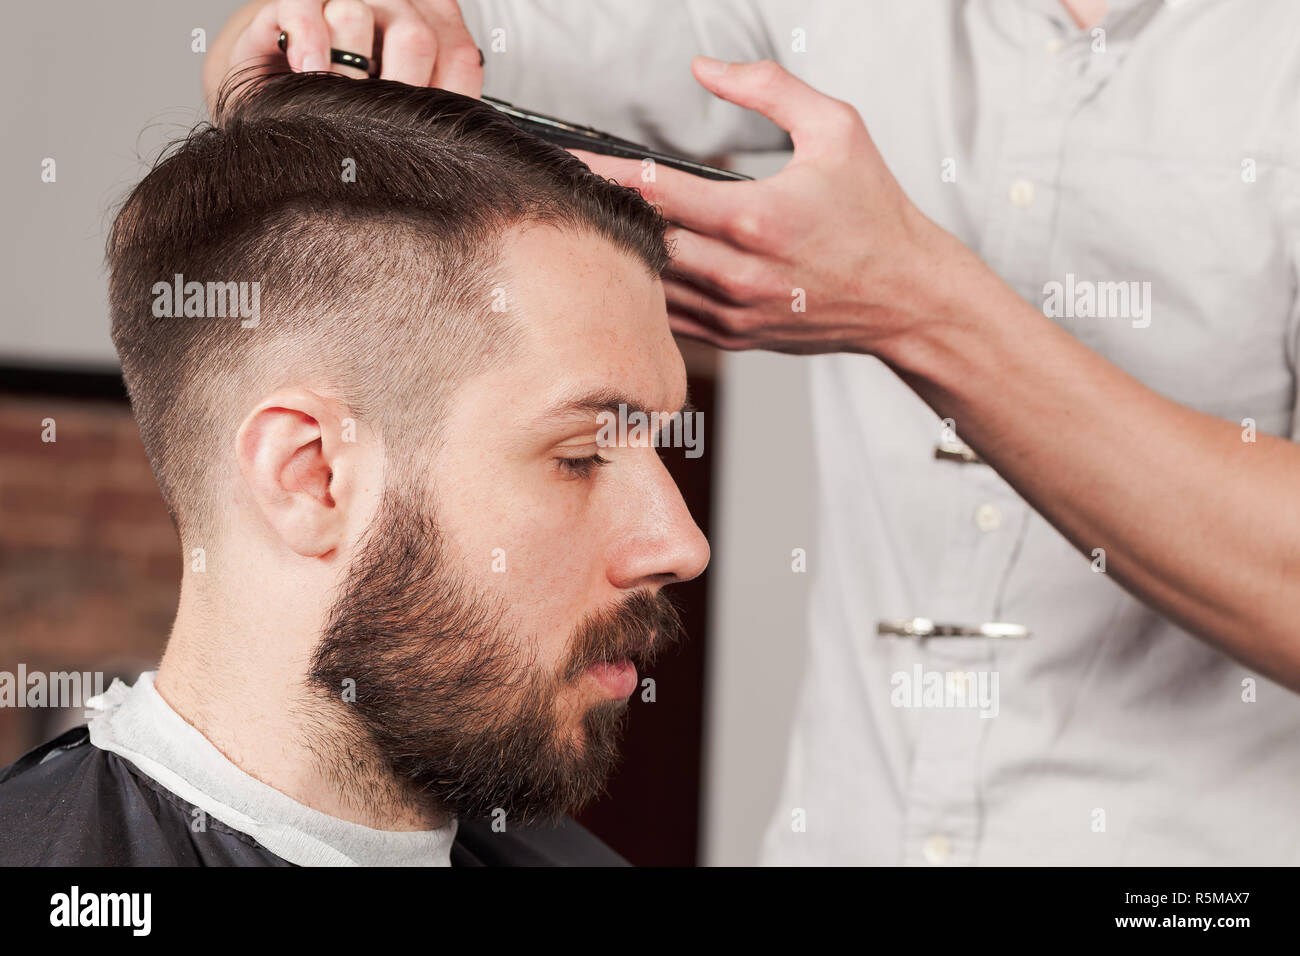 the hands of barber